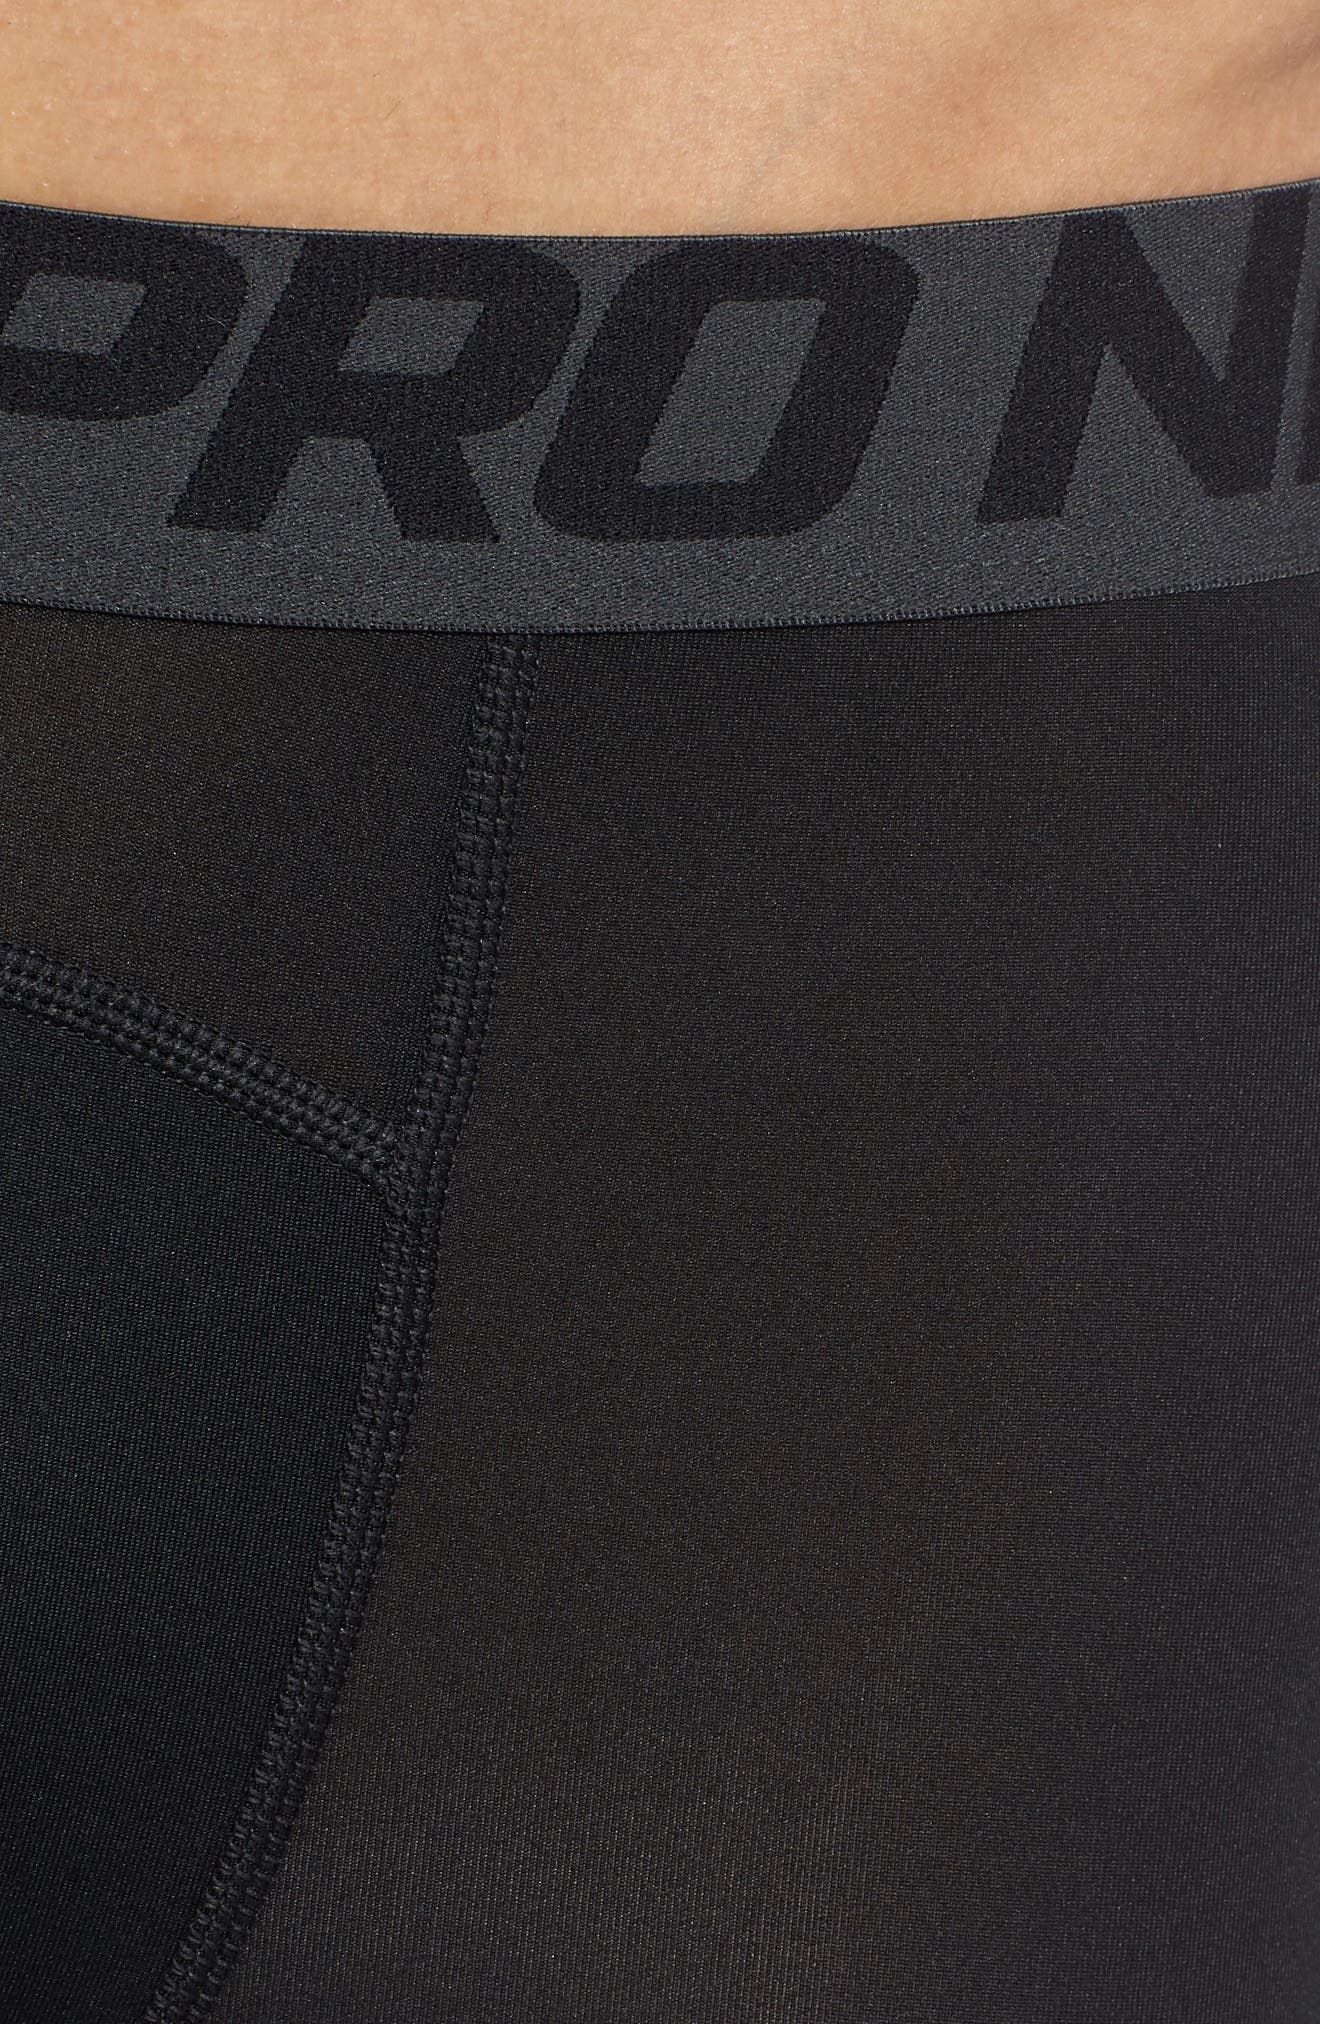 NP Running Tights,                             Alternate thumbnail 4, color,                             010